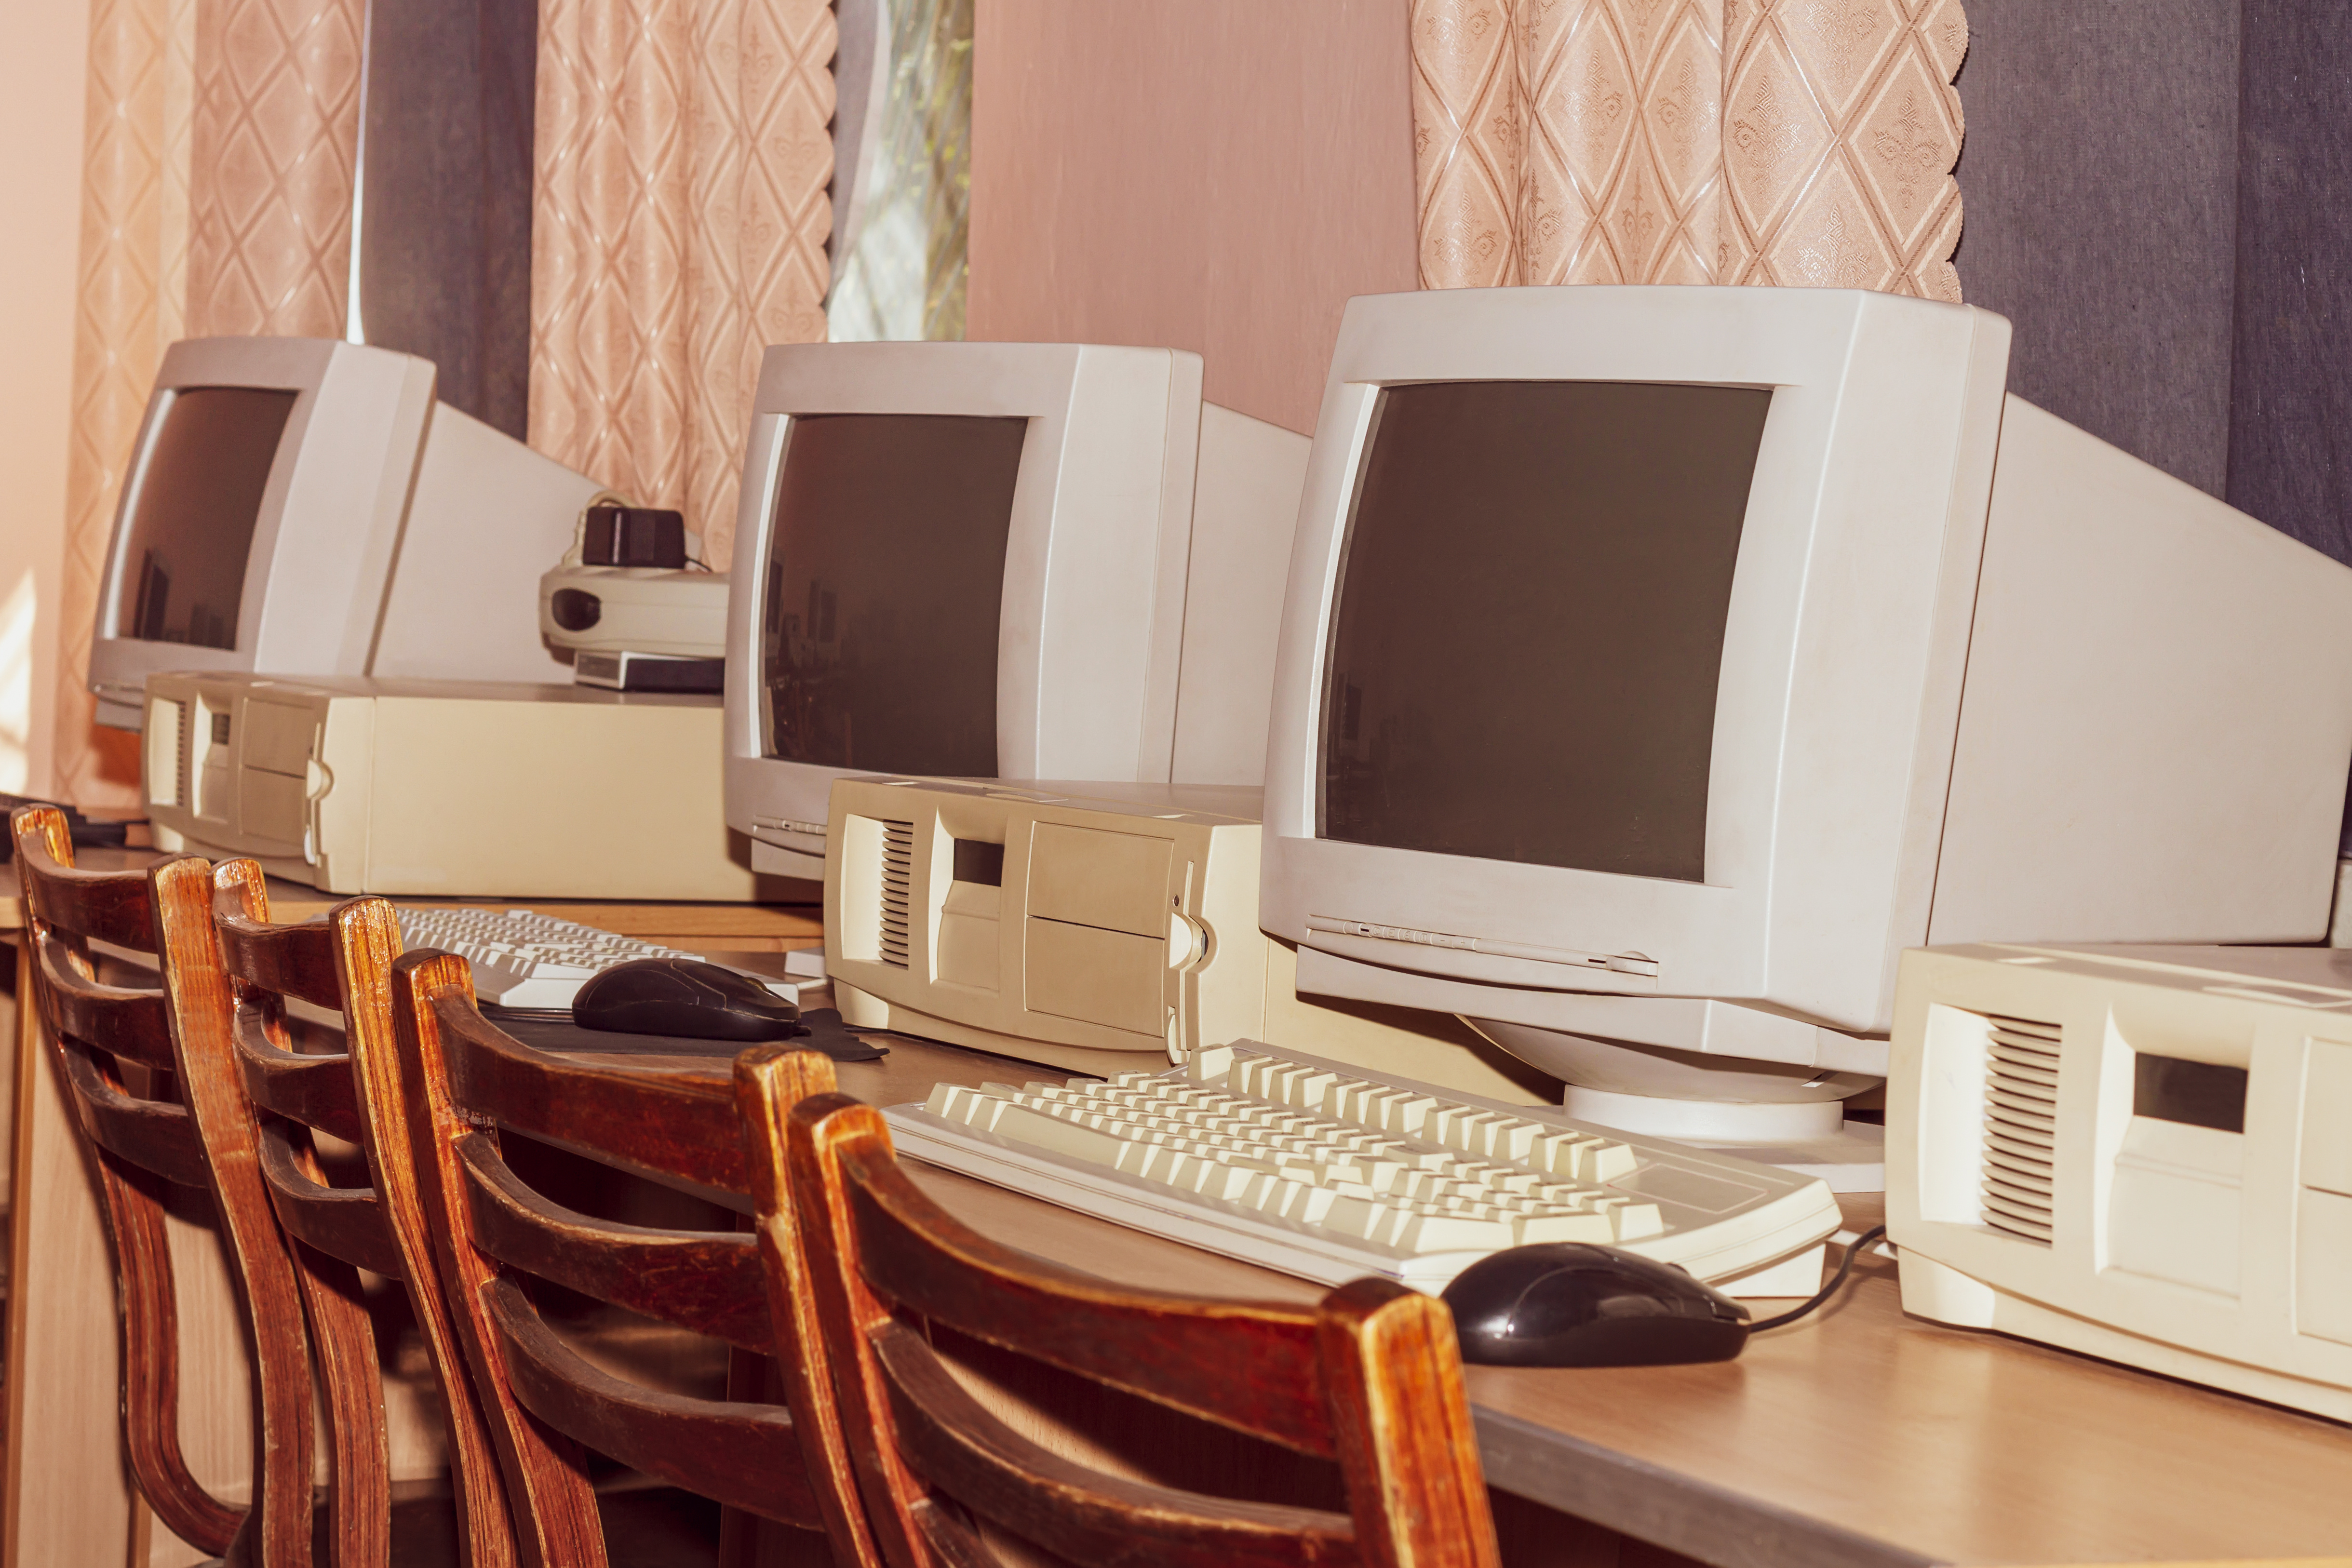 three vintage desktop computers from the 1990s on a wood table